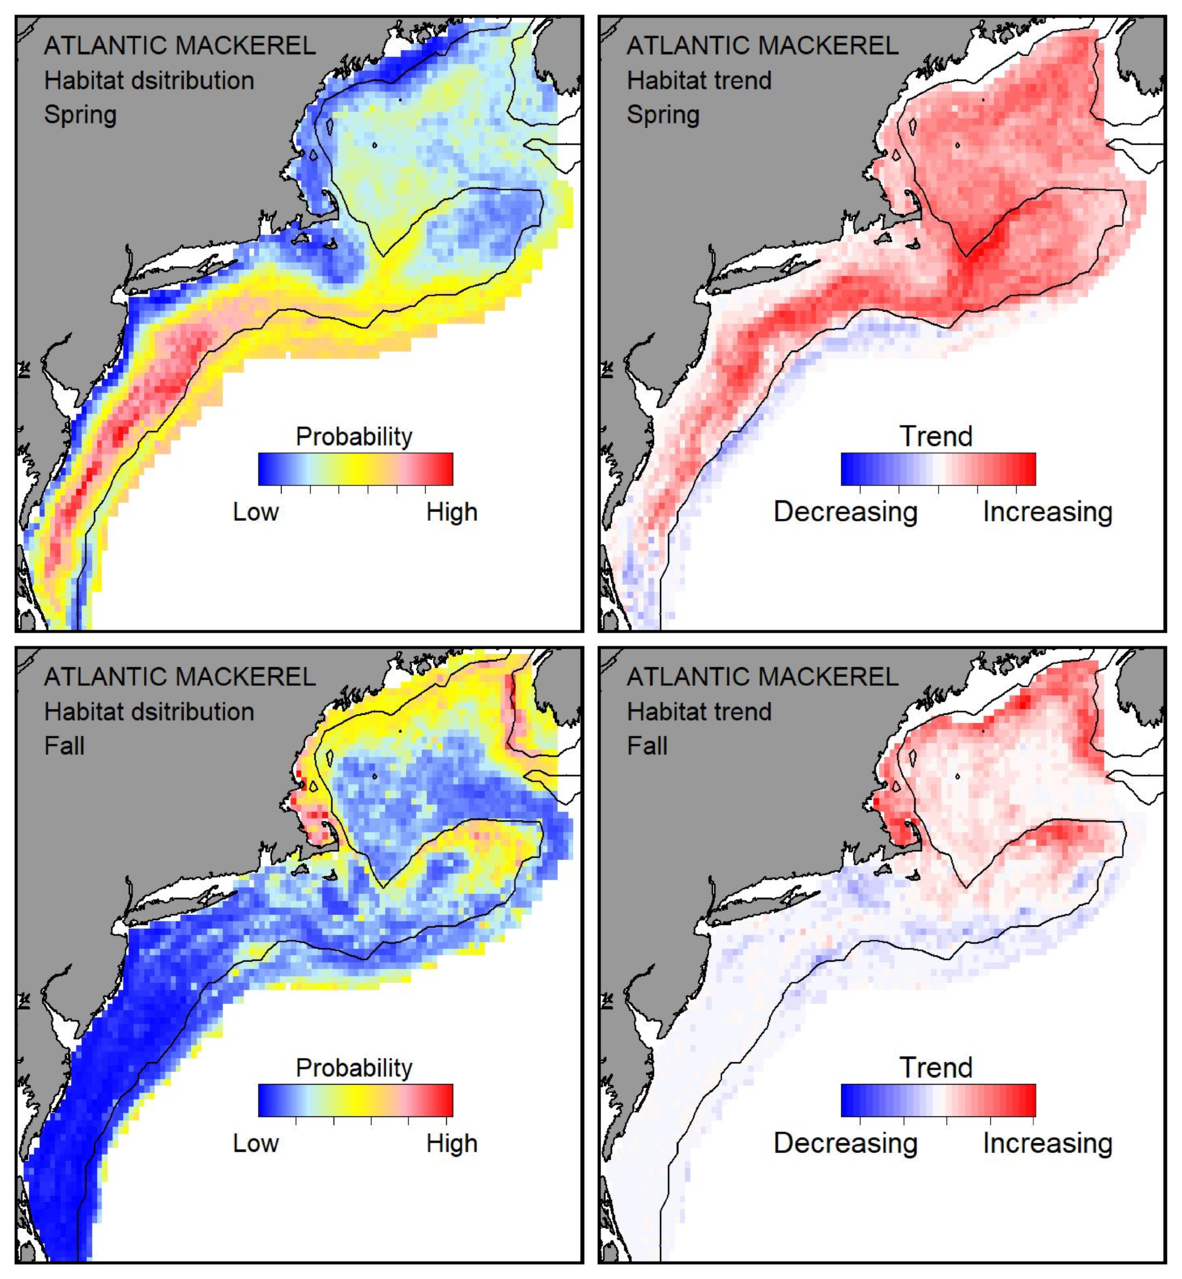 Probable habitat distribution for Atlantic mackerel showing the highest concentration and increasing trend in the Gulf of Maine during the spring. Bottom row: Probable habitat distribution for Atlantic mackerel showing the highest concentration and increasing trend in the Gulf of Maine during the fall.